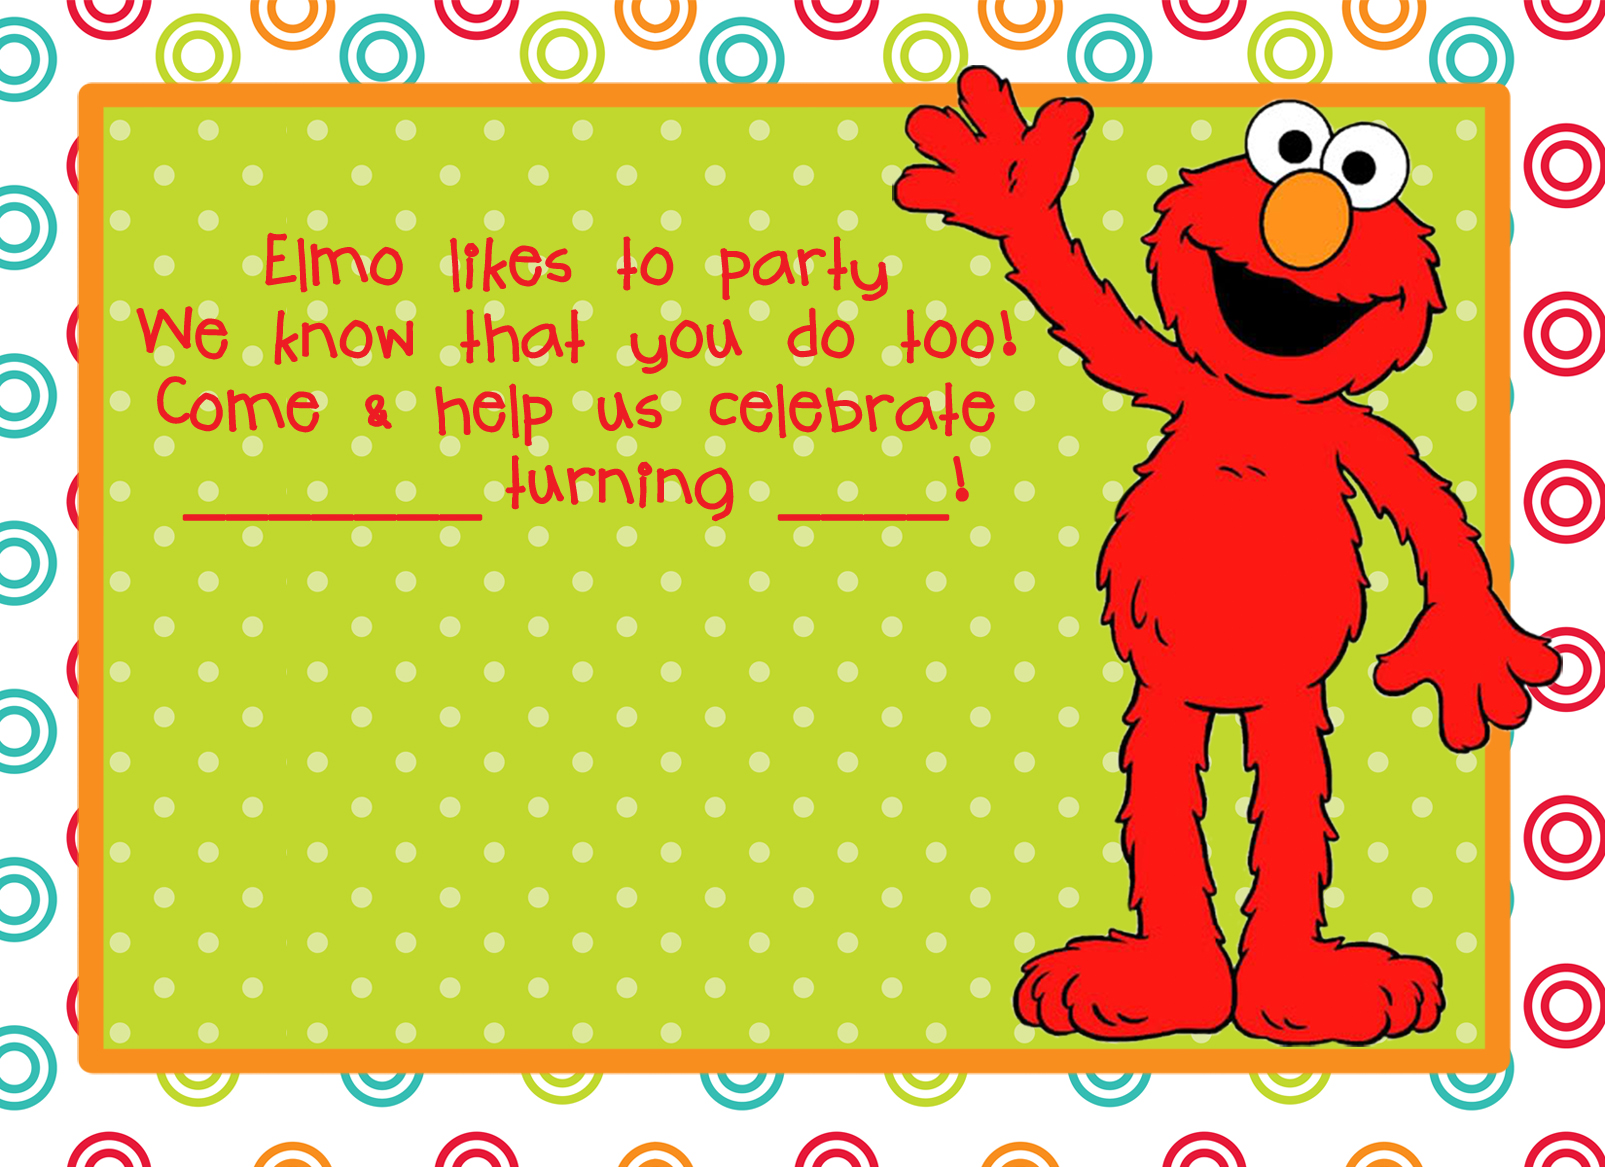 4 Images of Free Printable Elmo Birthday Party Invitations